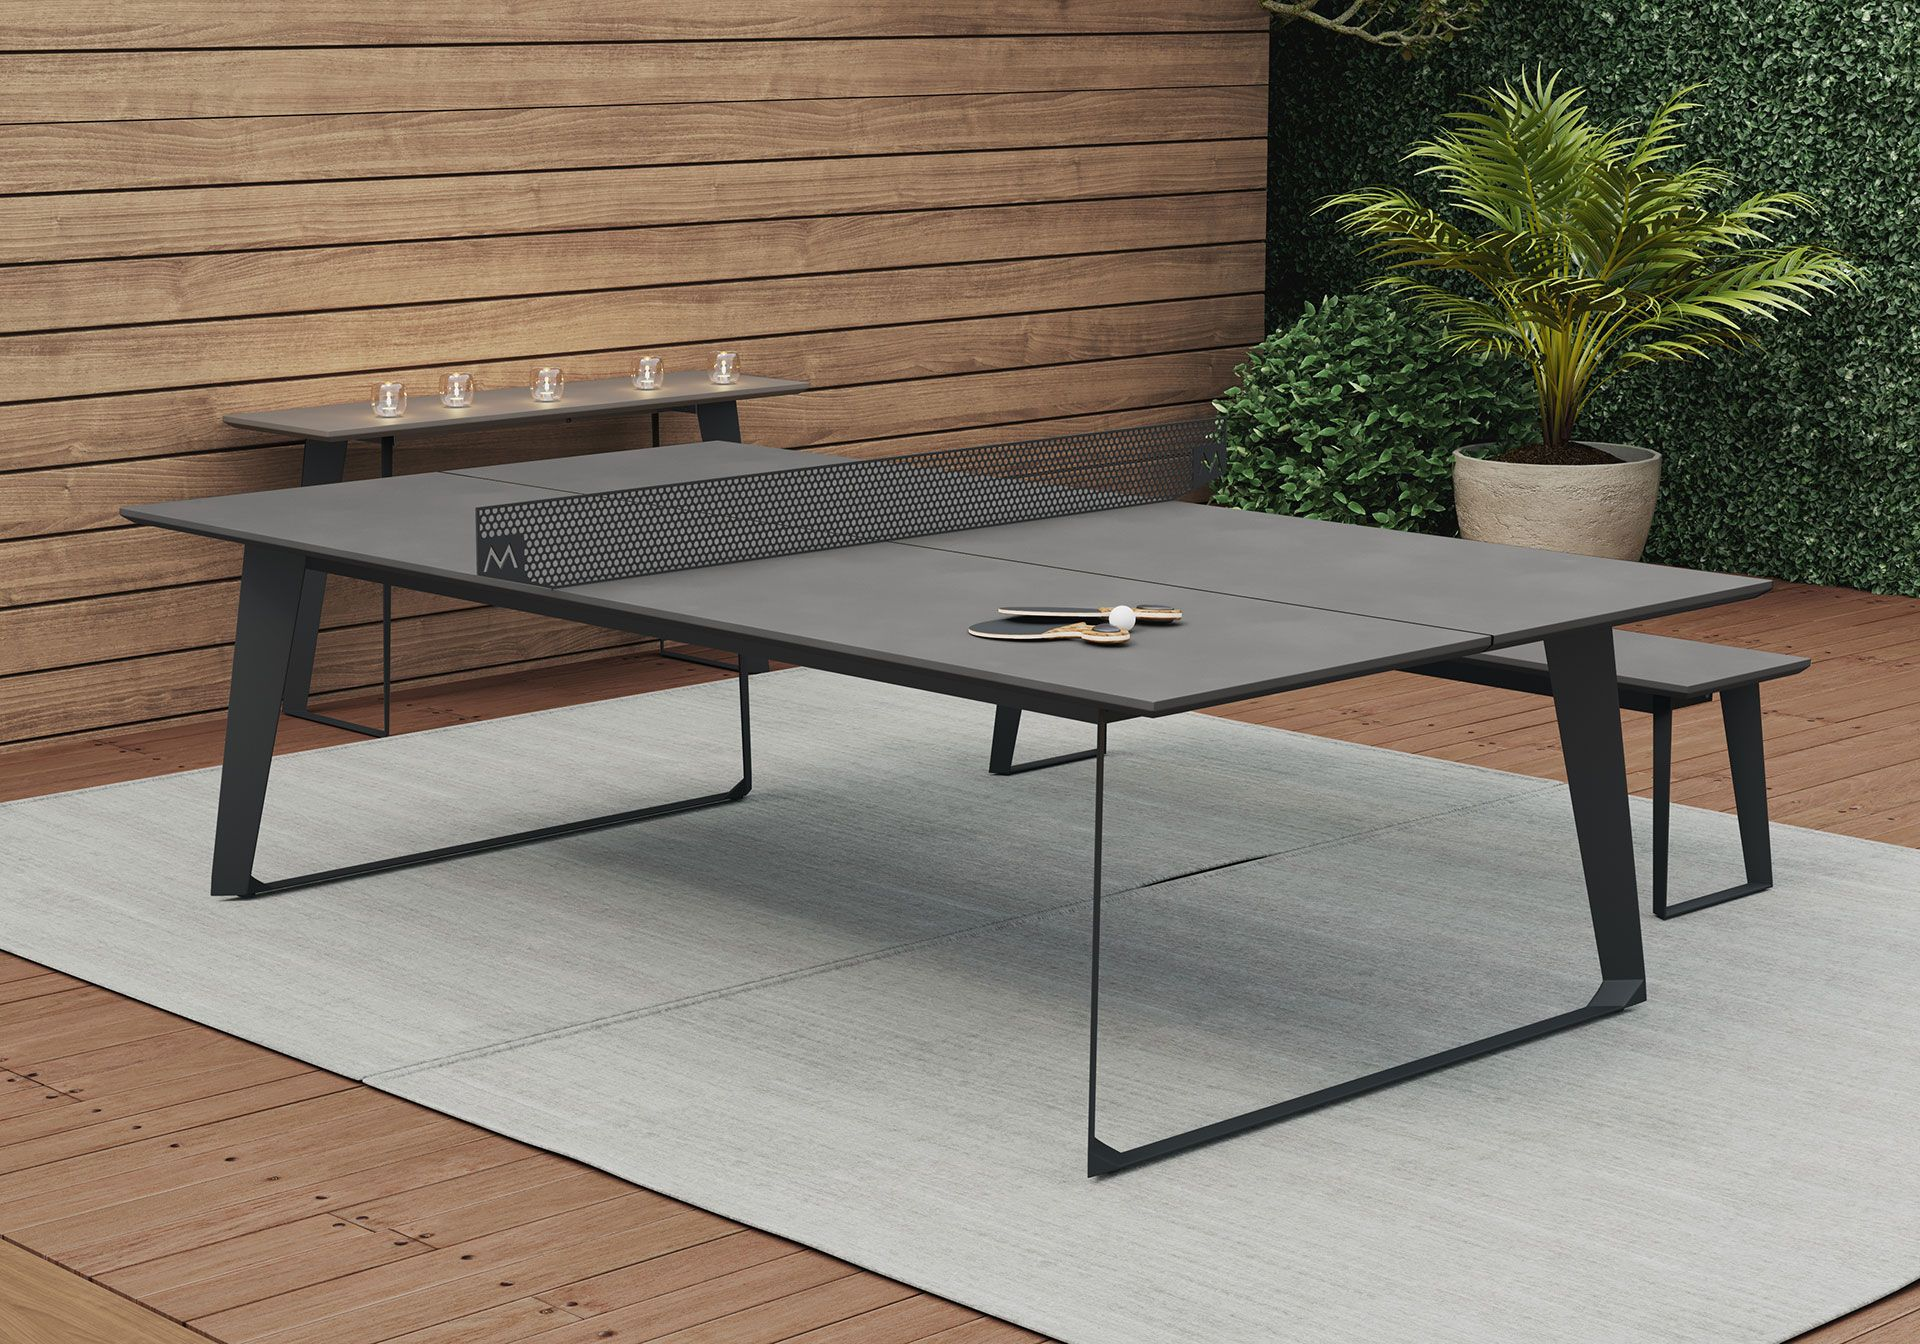 Modern Lift Top Coffee Table Collection 360 View 13 L In 2020 Concrete Coffee Table Concrete Dining Table Outdoor Ping Pong Table